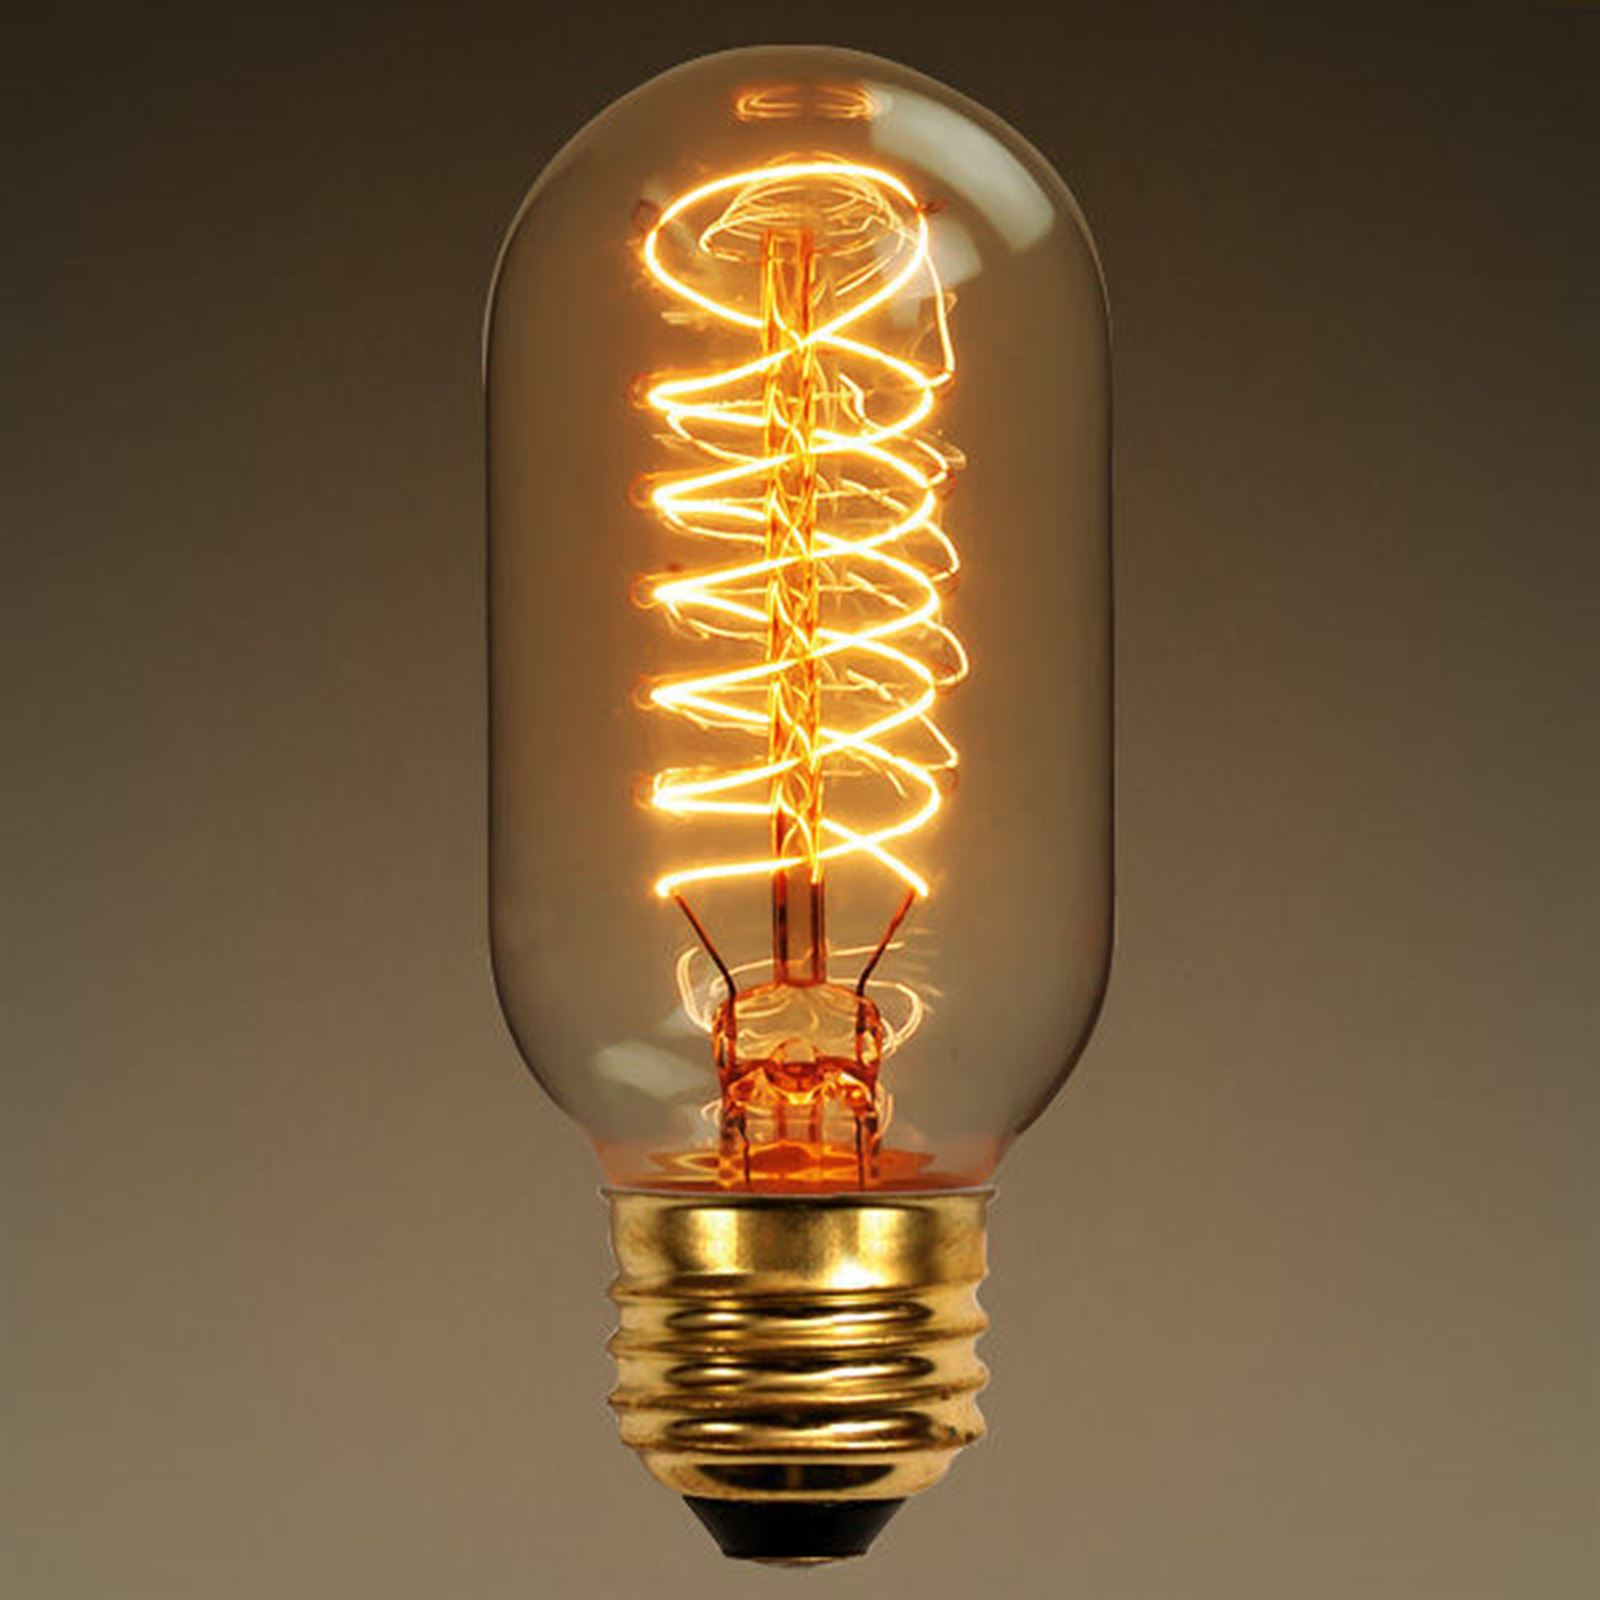 Antique Lamps Vintage Bulbs Retro Edison Decorative Lights Filament Amber Ebay